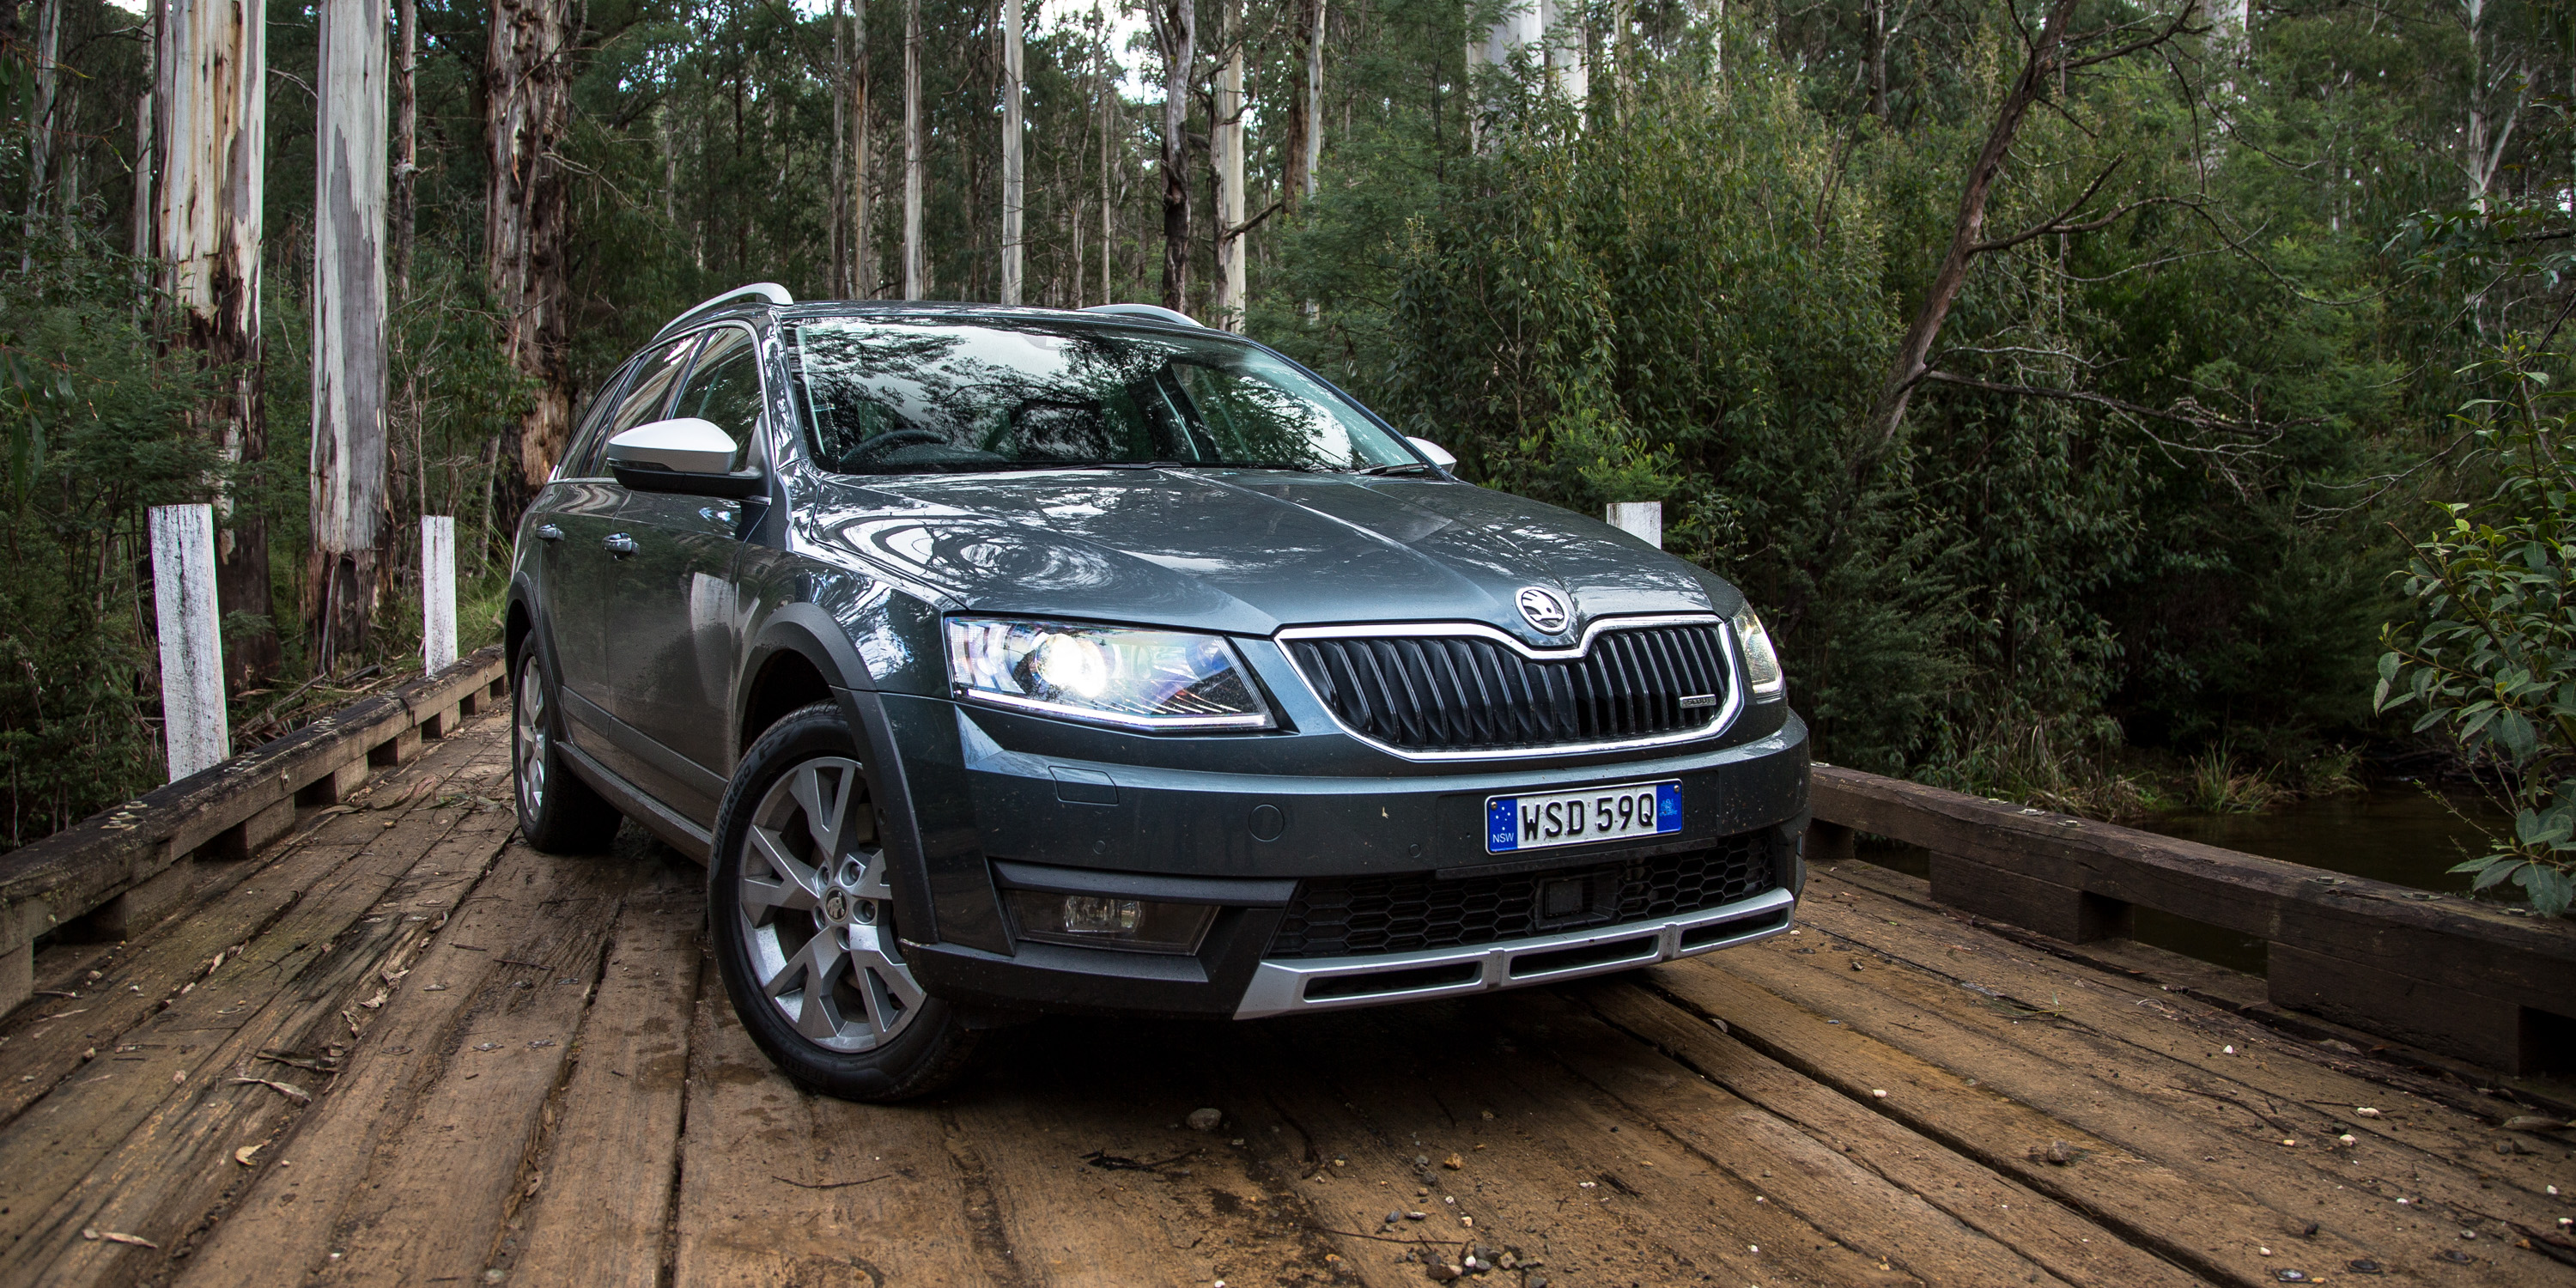 2016 Skoda Octavia Scout Preview